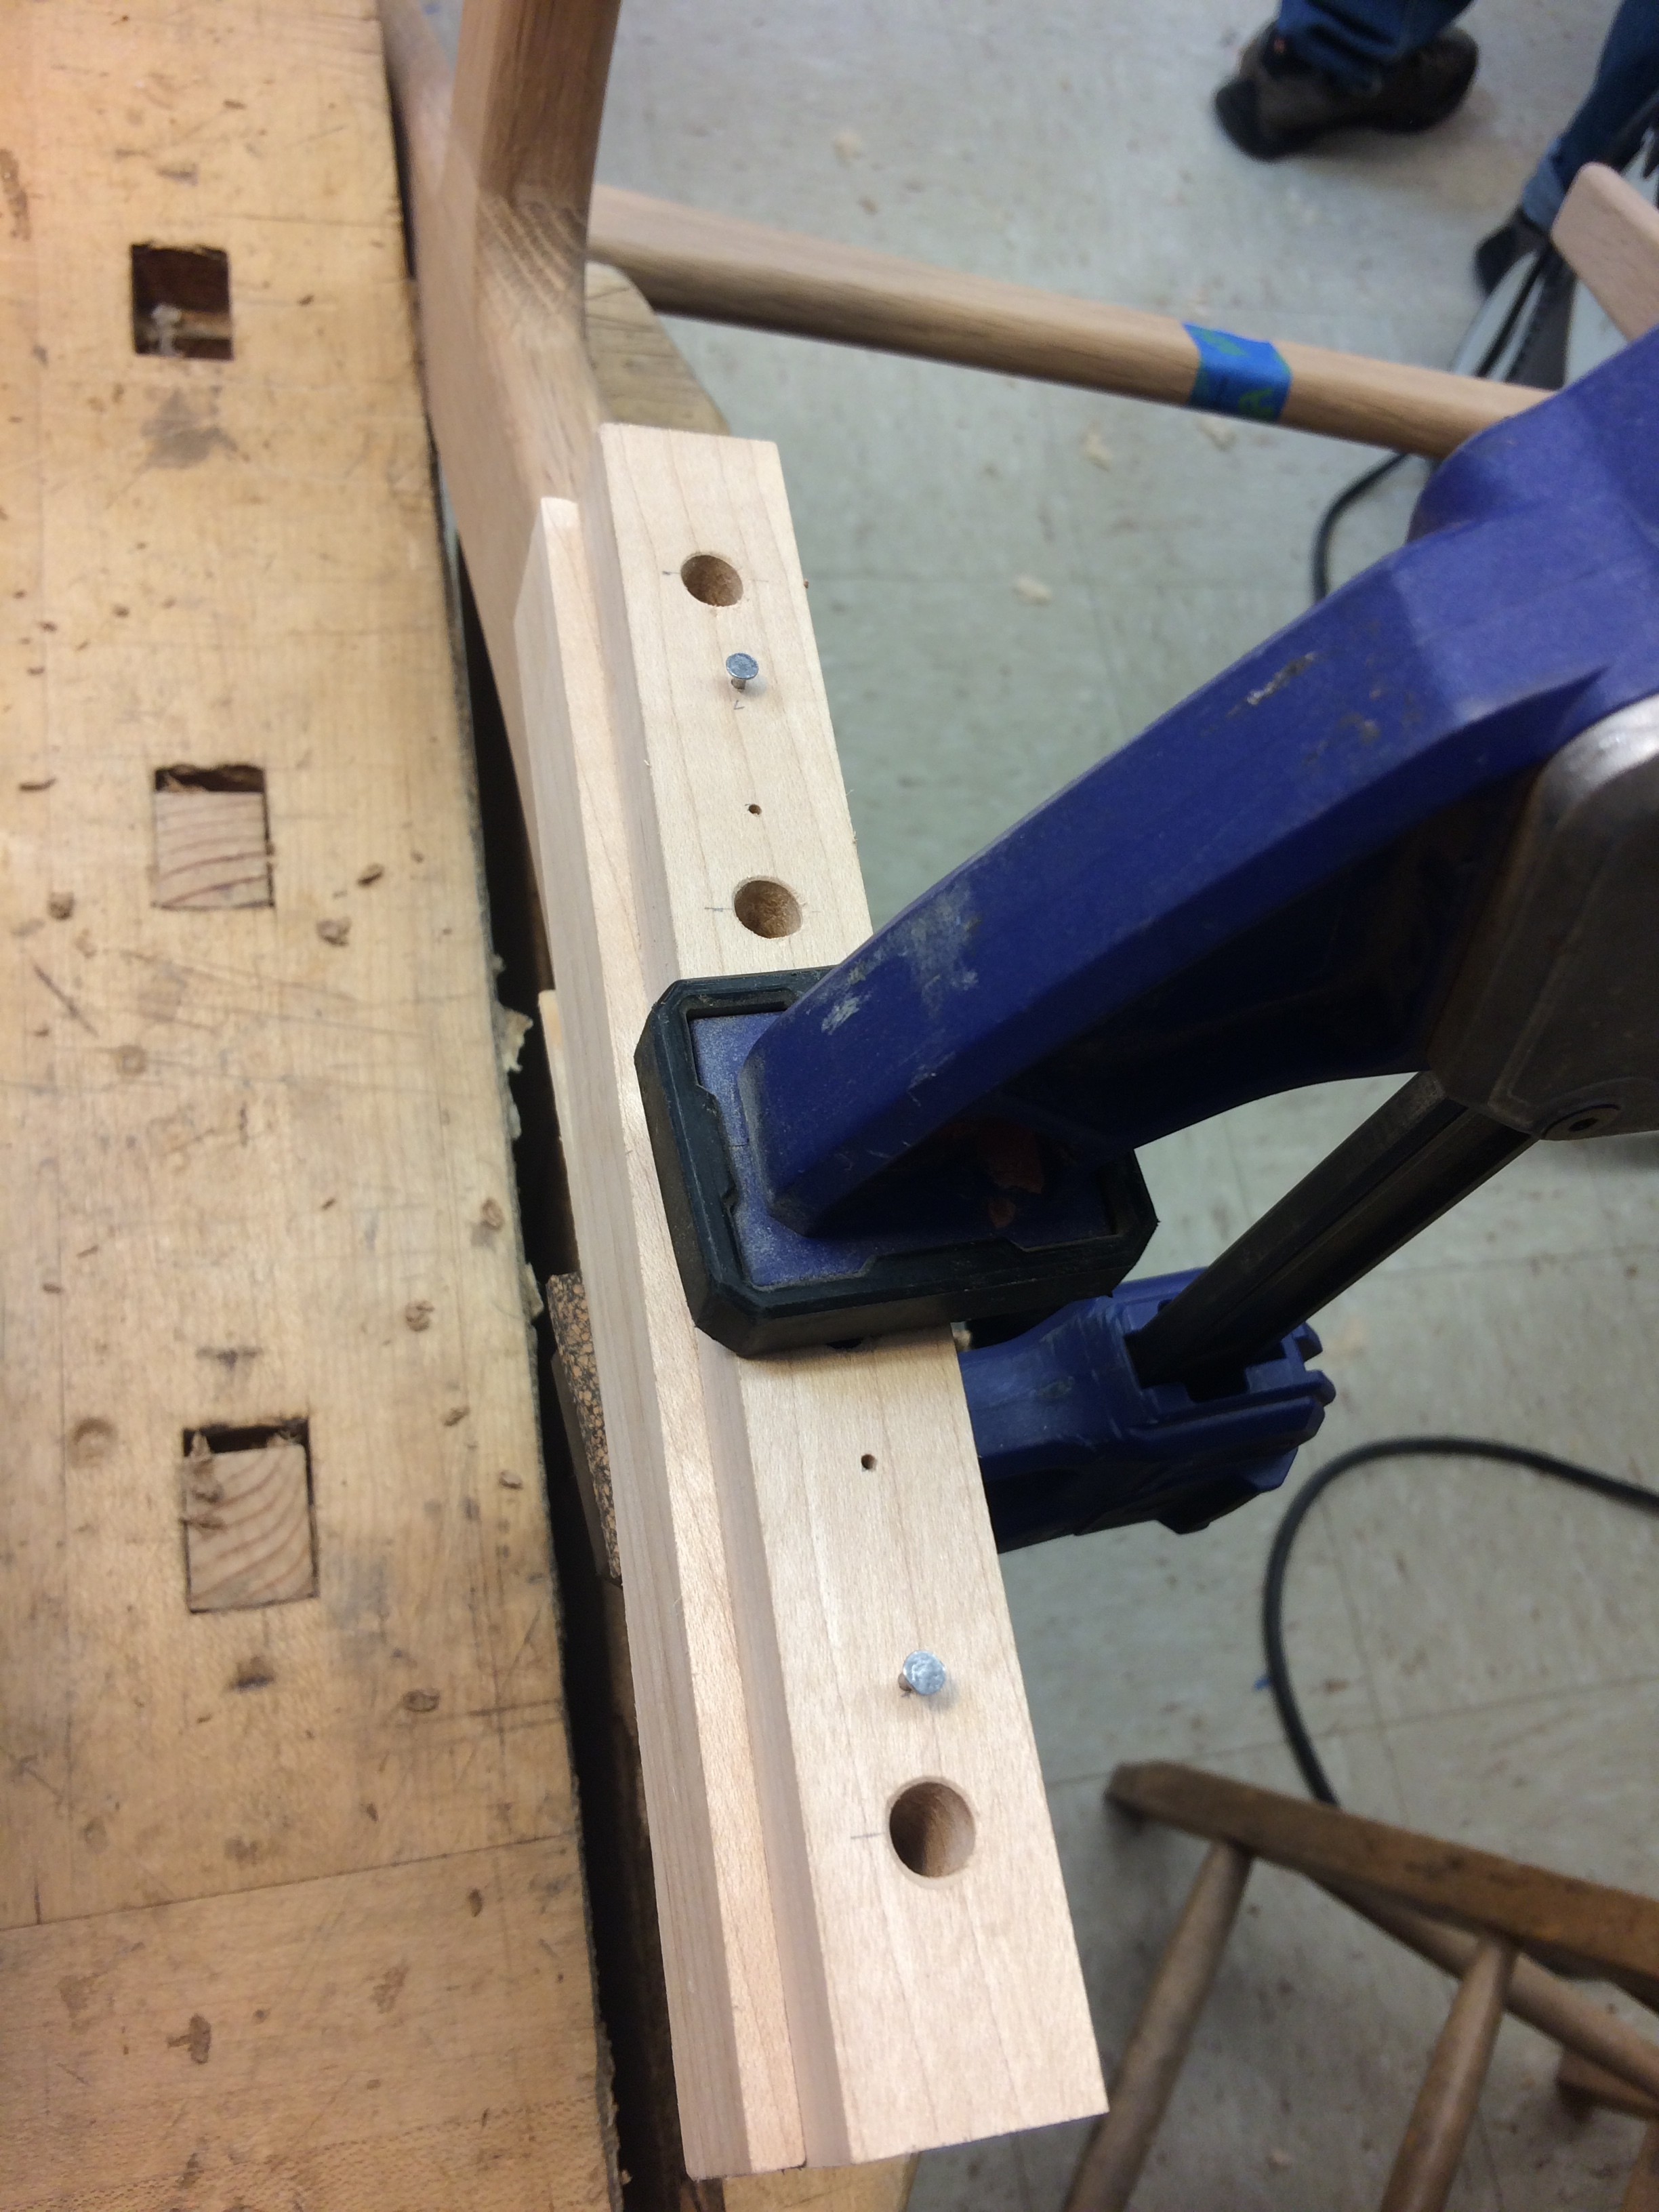 A custom jig ensures the holes are drilled in the correct orientation relative to the joint.